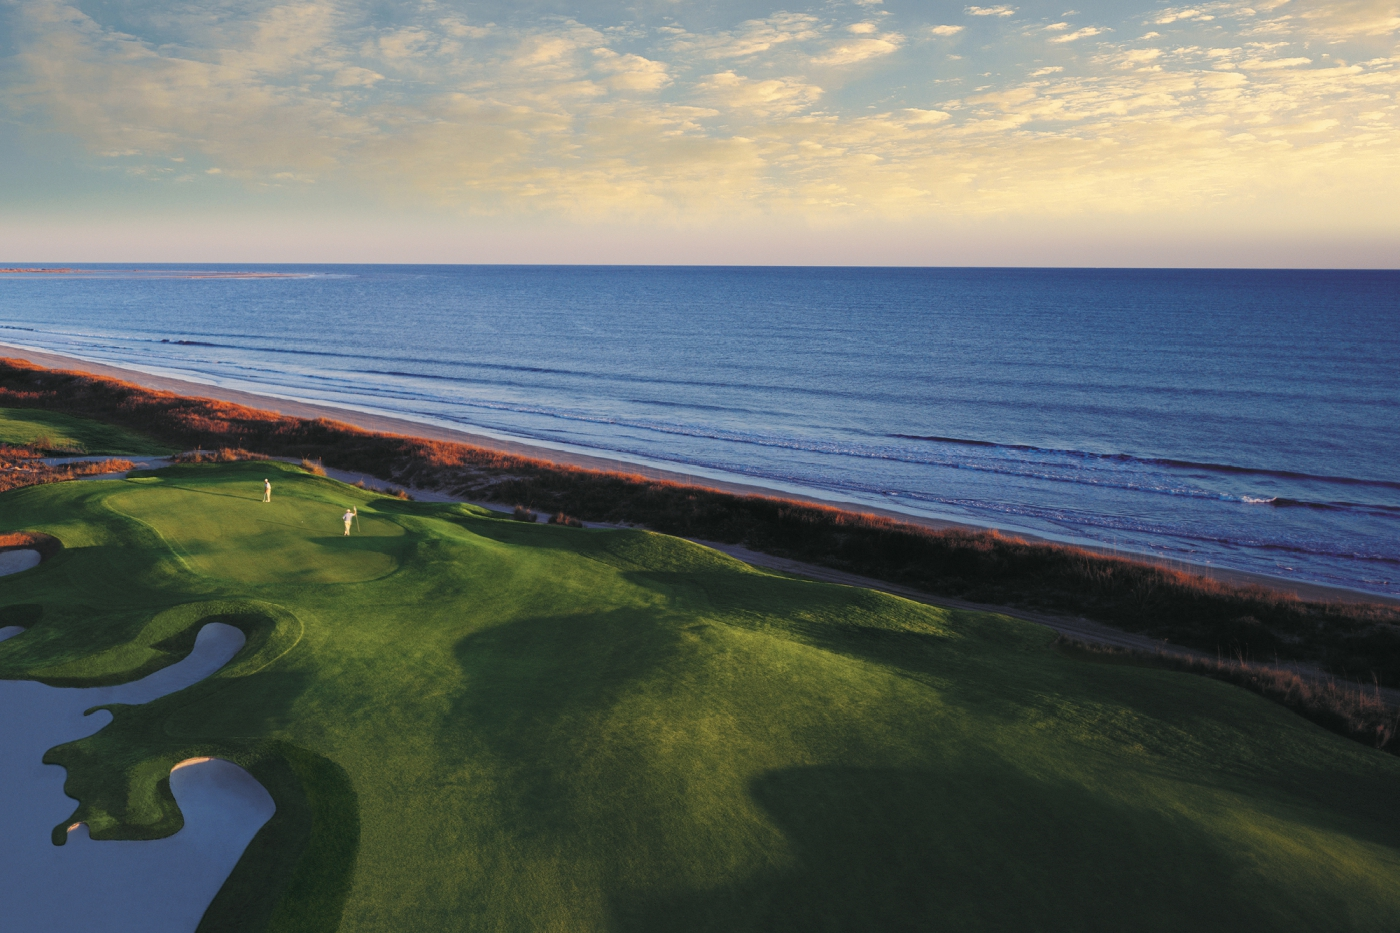 Visit Kiawah Island and work on your swing to the peaceful sounds of ocean waves.